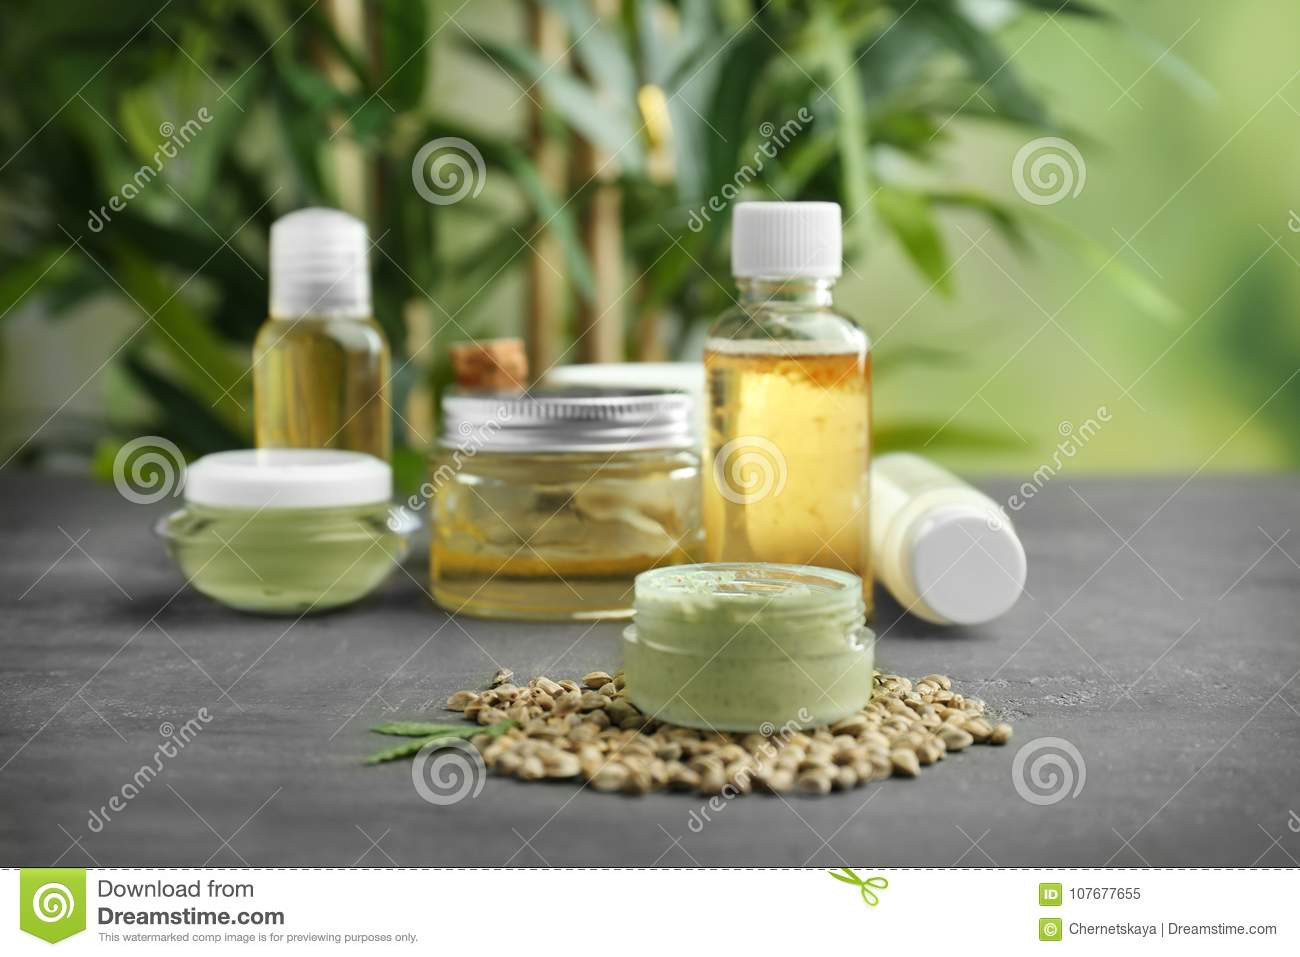 Hemp cosmetic products and seeds